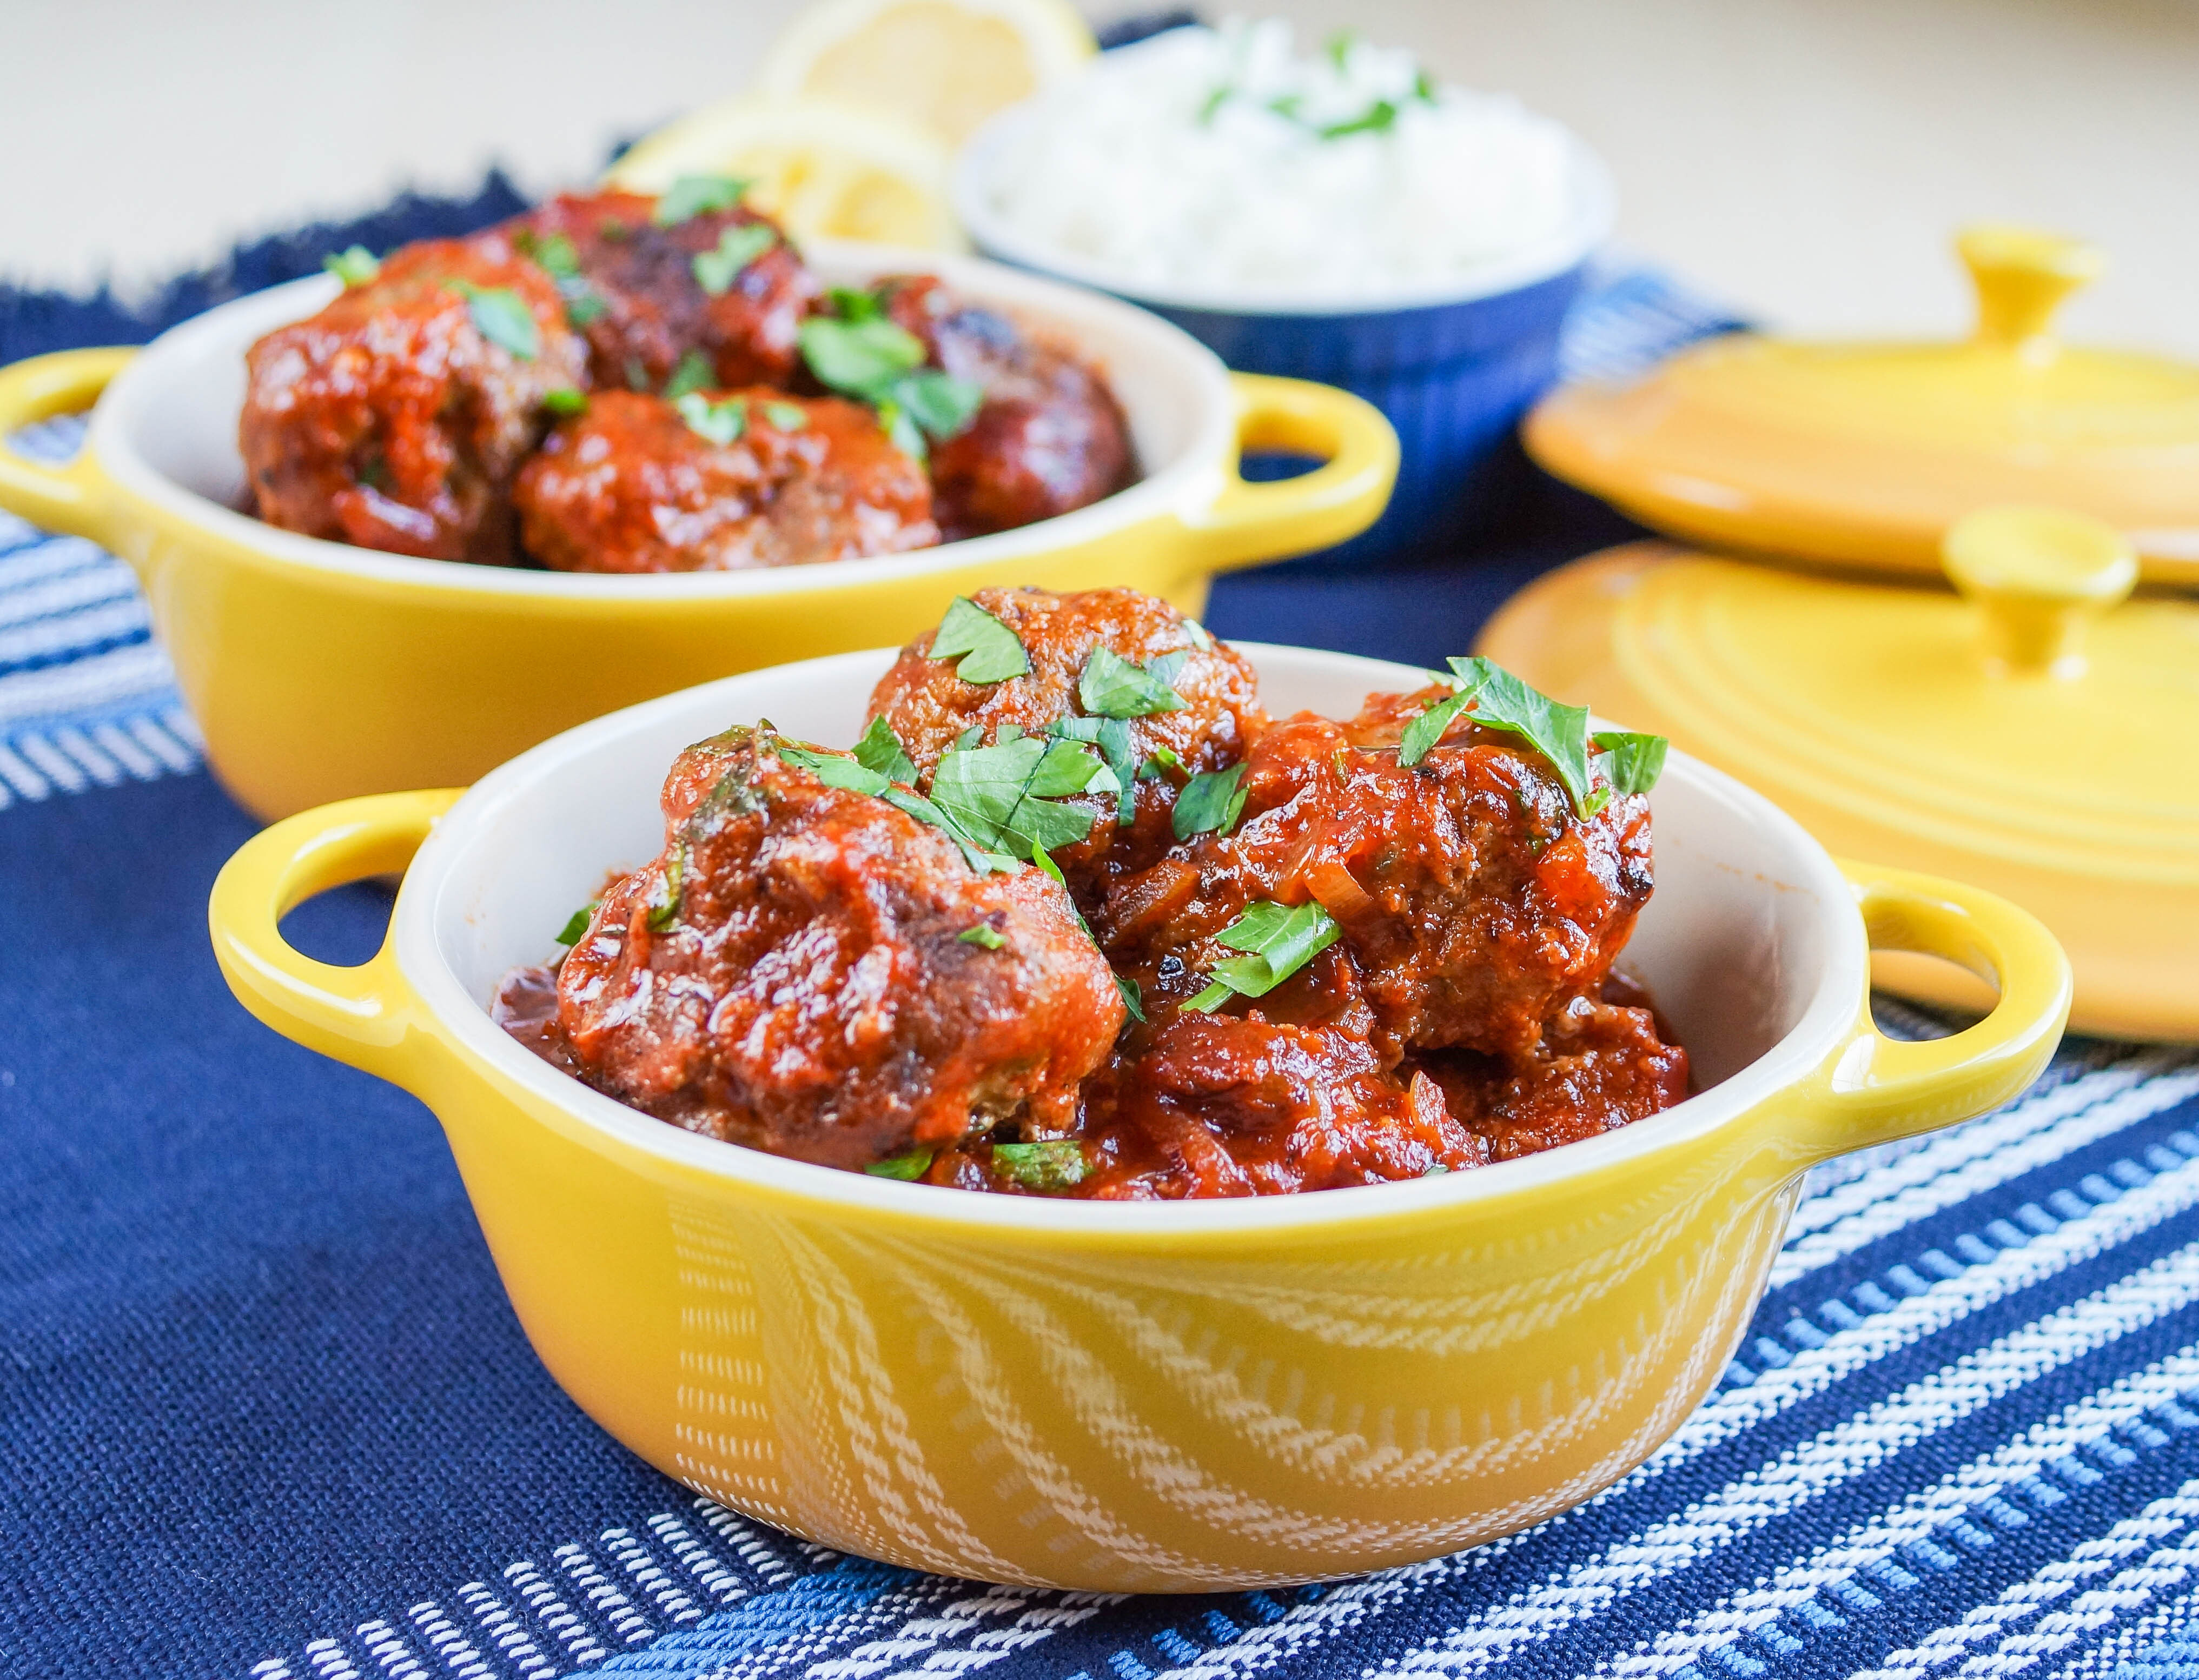 100 Best Jewish Recipes Cookbook Review and Albondigas al Buyor (Greek-Jewish Meatballs in a Sweet-and-Sour Sauce)